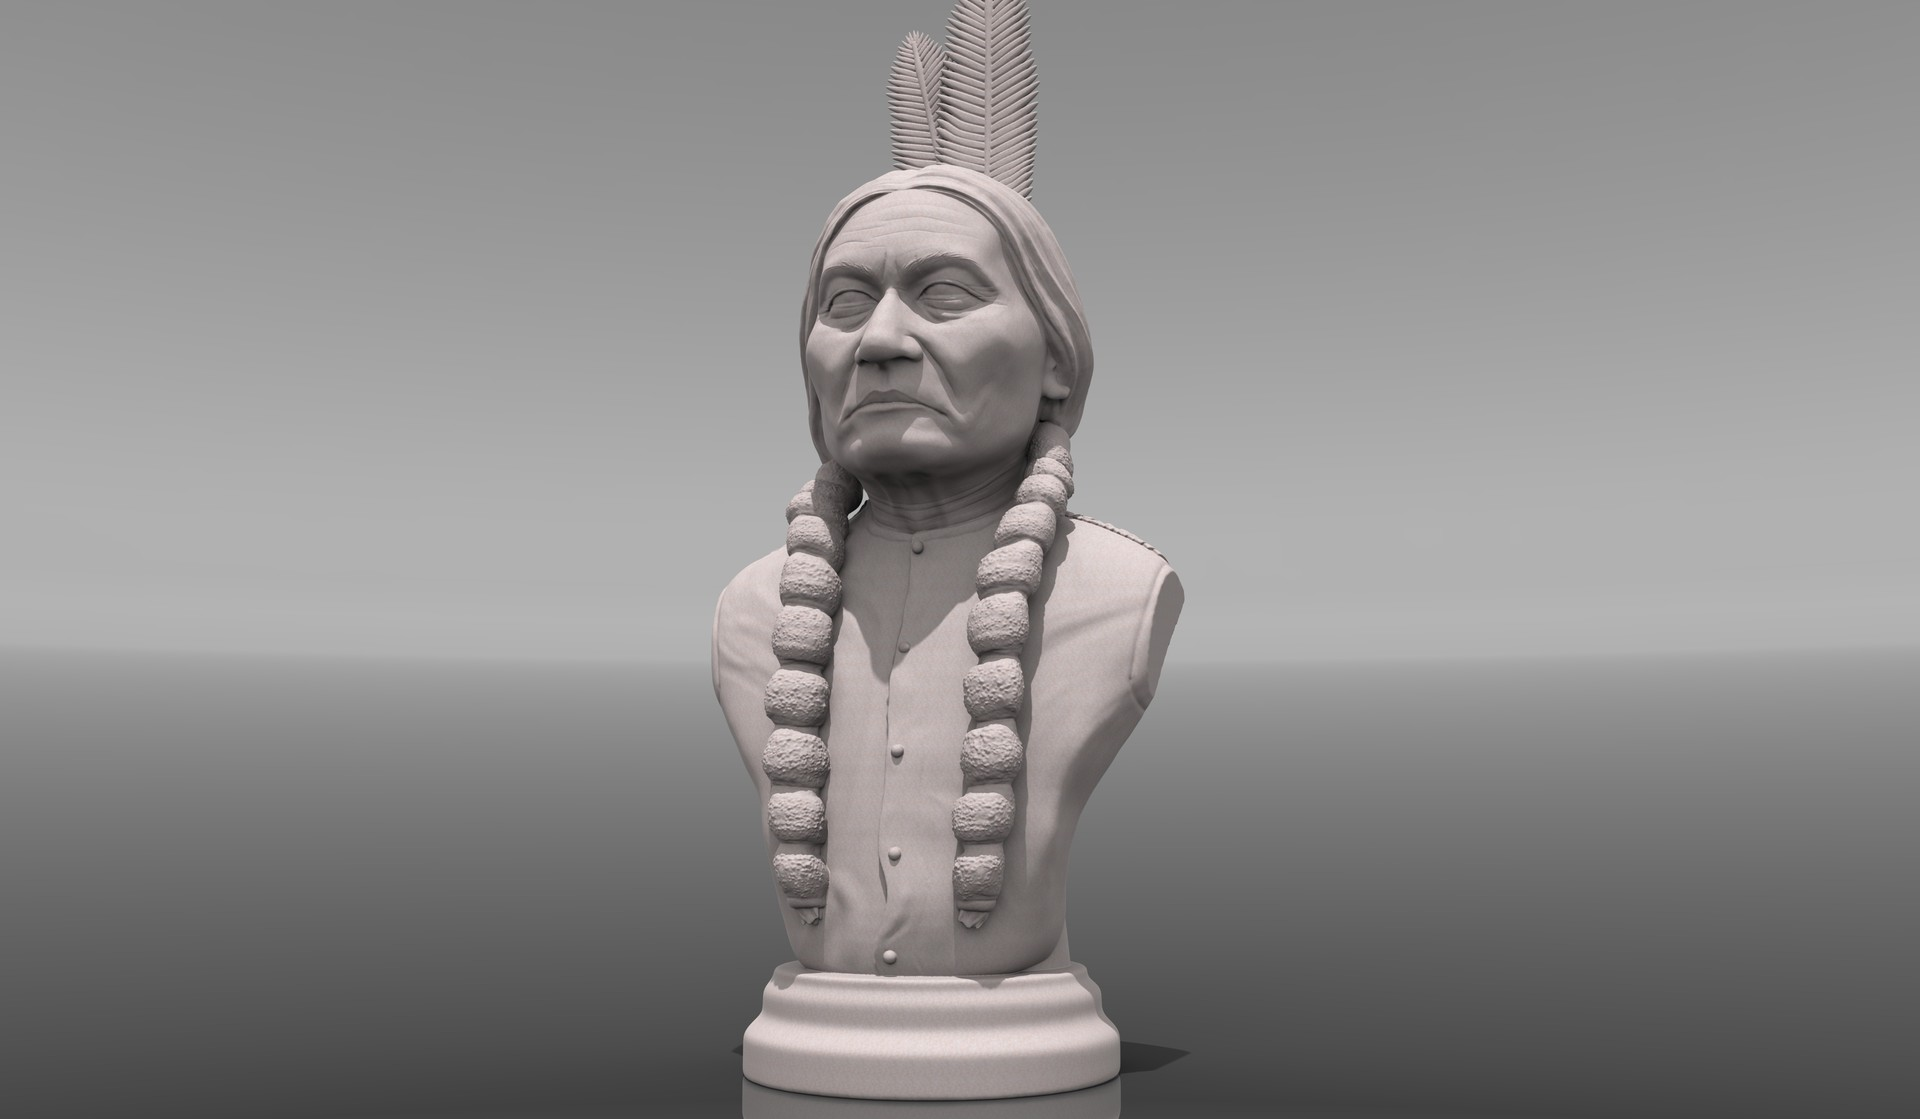 Tom veg sitting bull 3